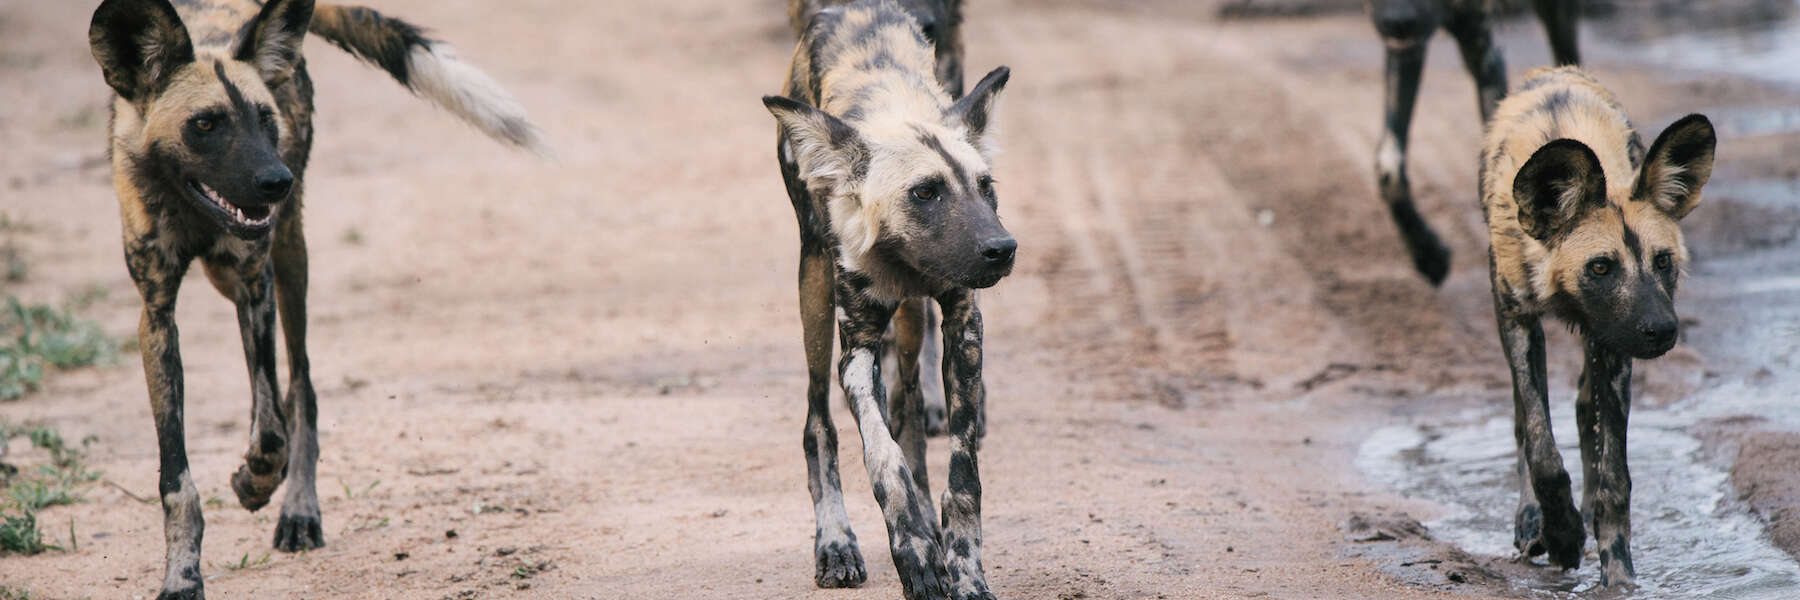 Behind the Image: African Wild Dog Photography